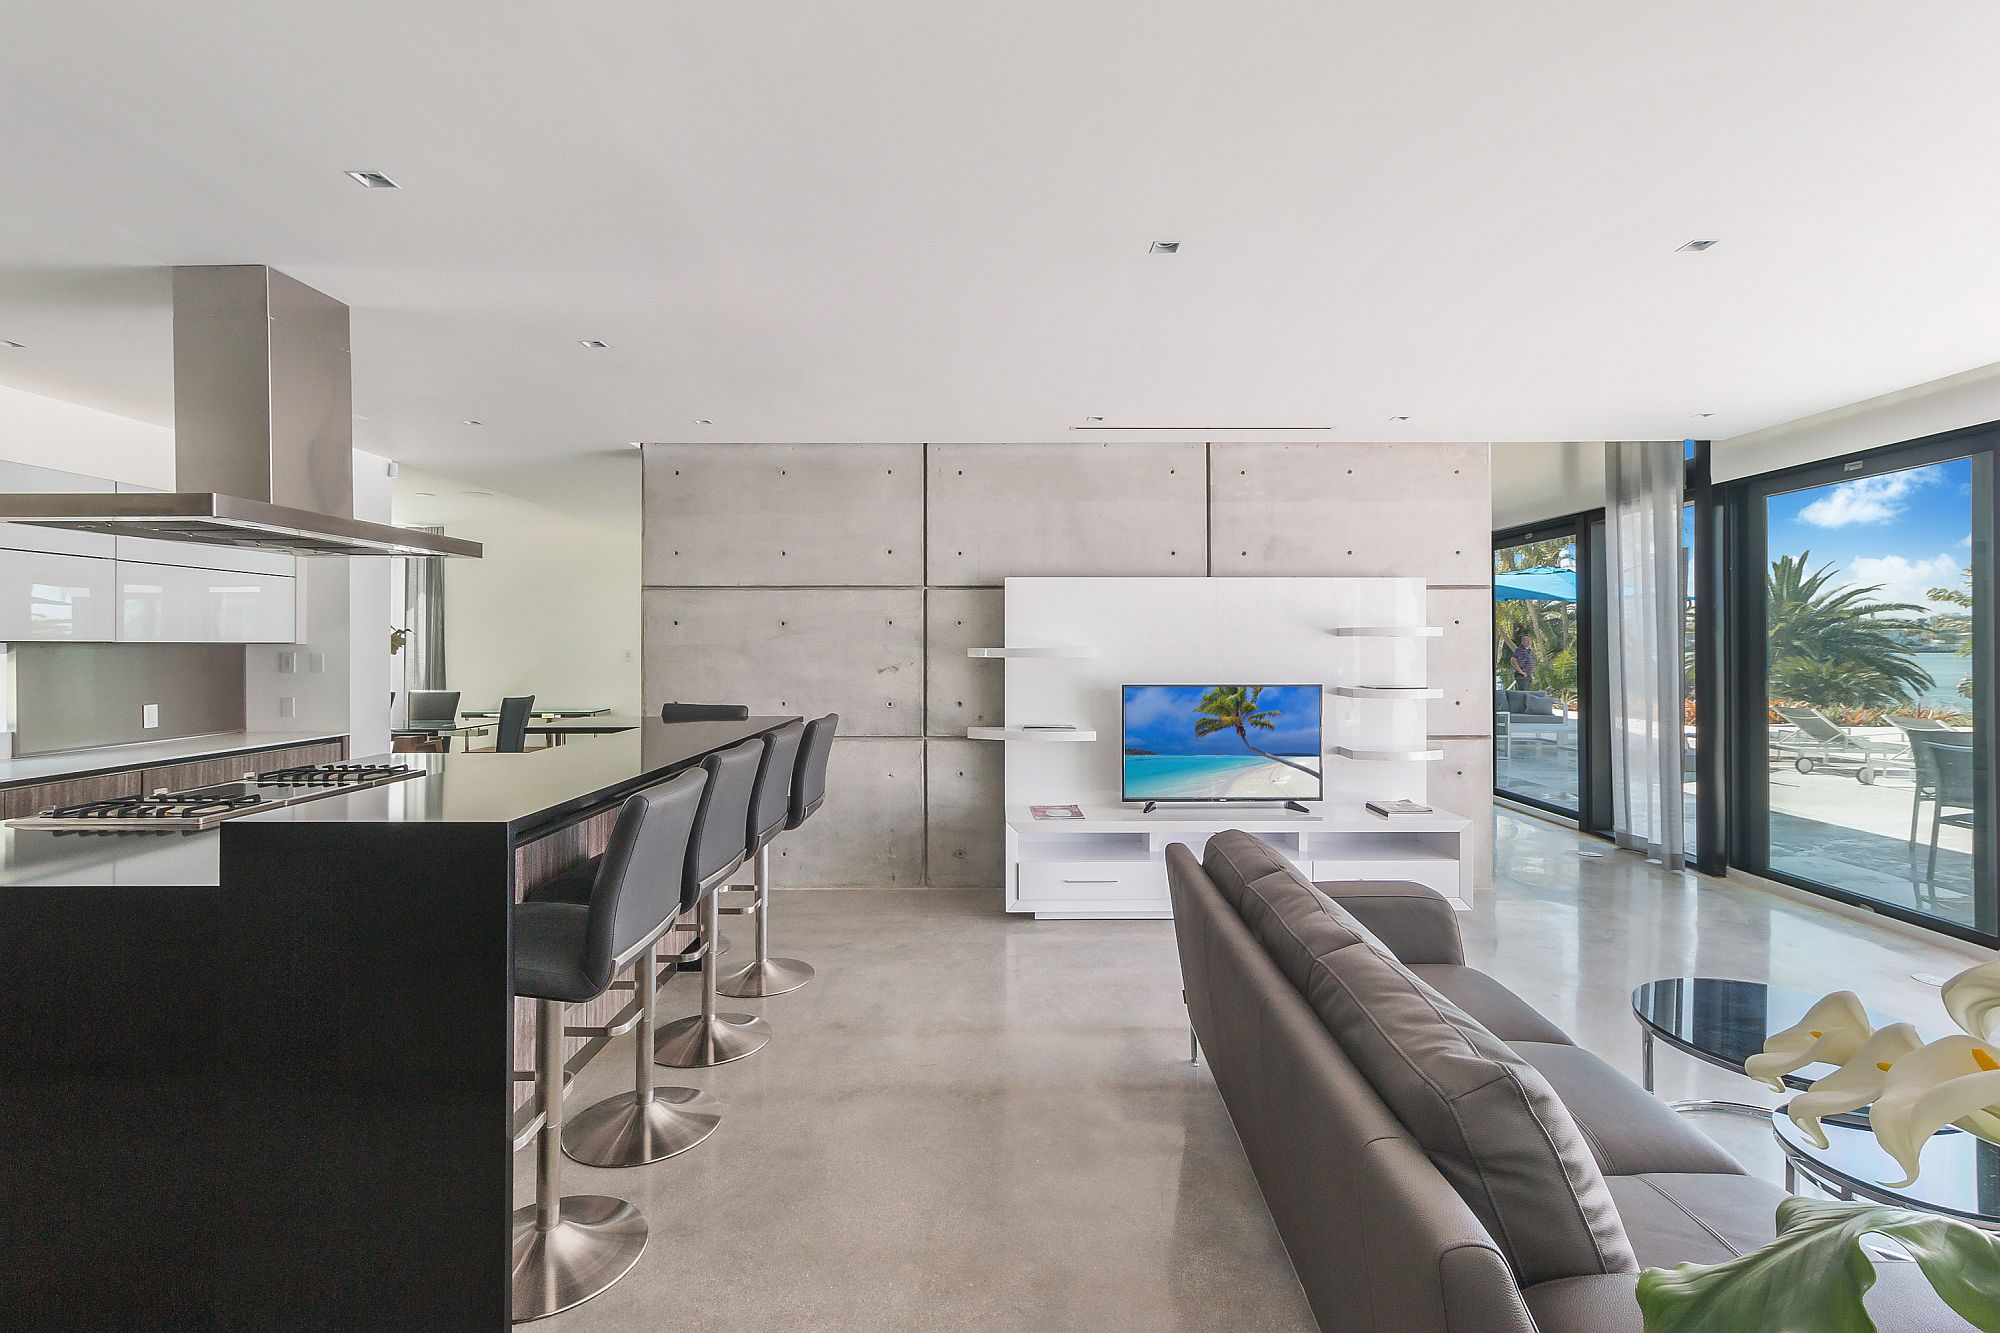 Concrete and white give the interior a fresh, modern look